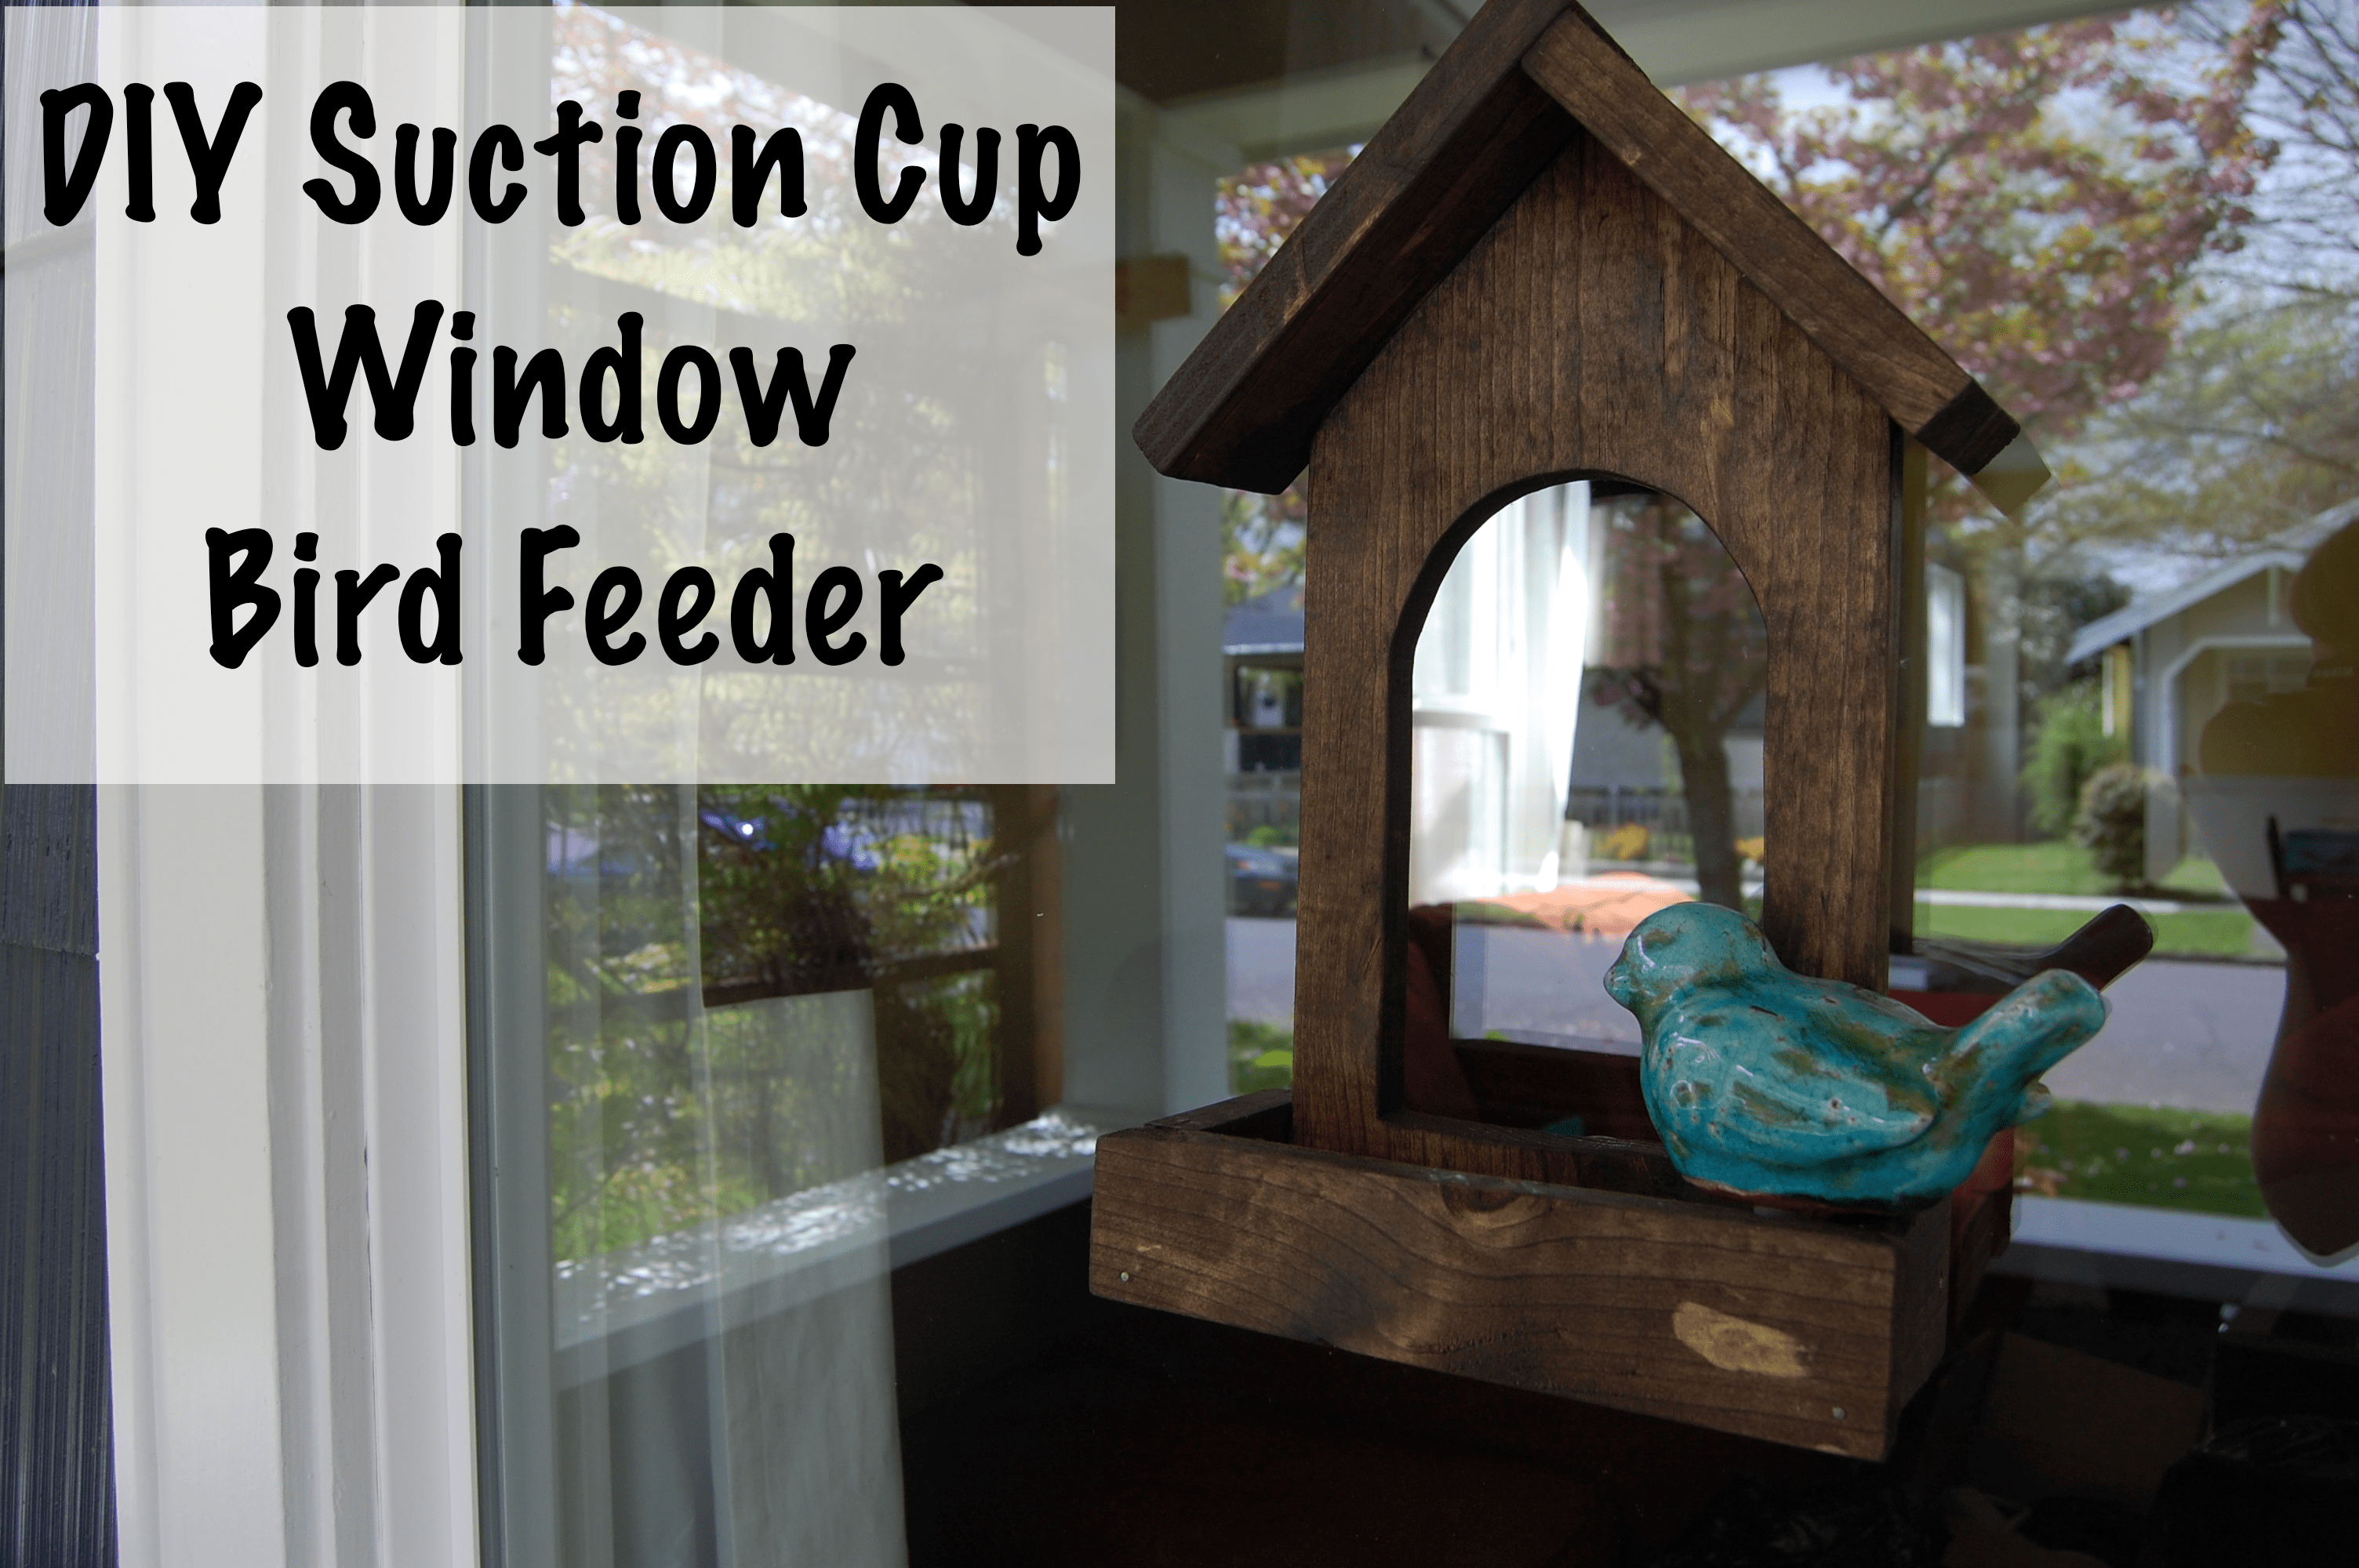 Suction cup window bird feeder